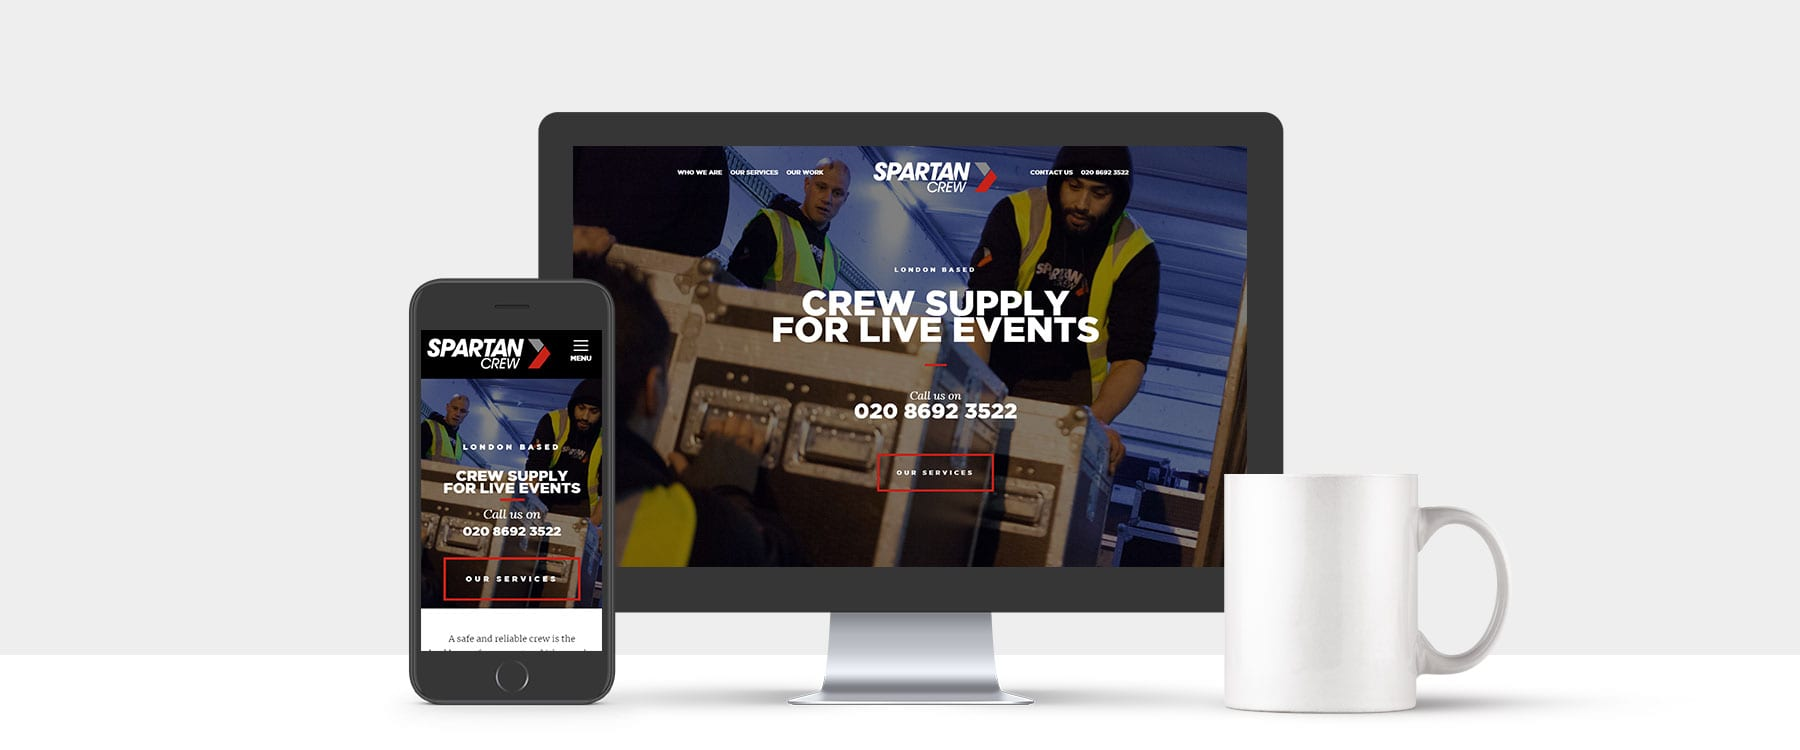 Brand New Website for London Based Spartan Crew Image